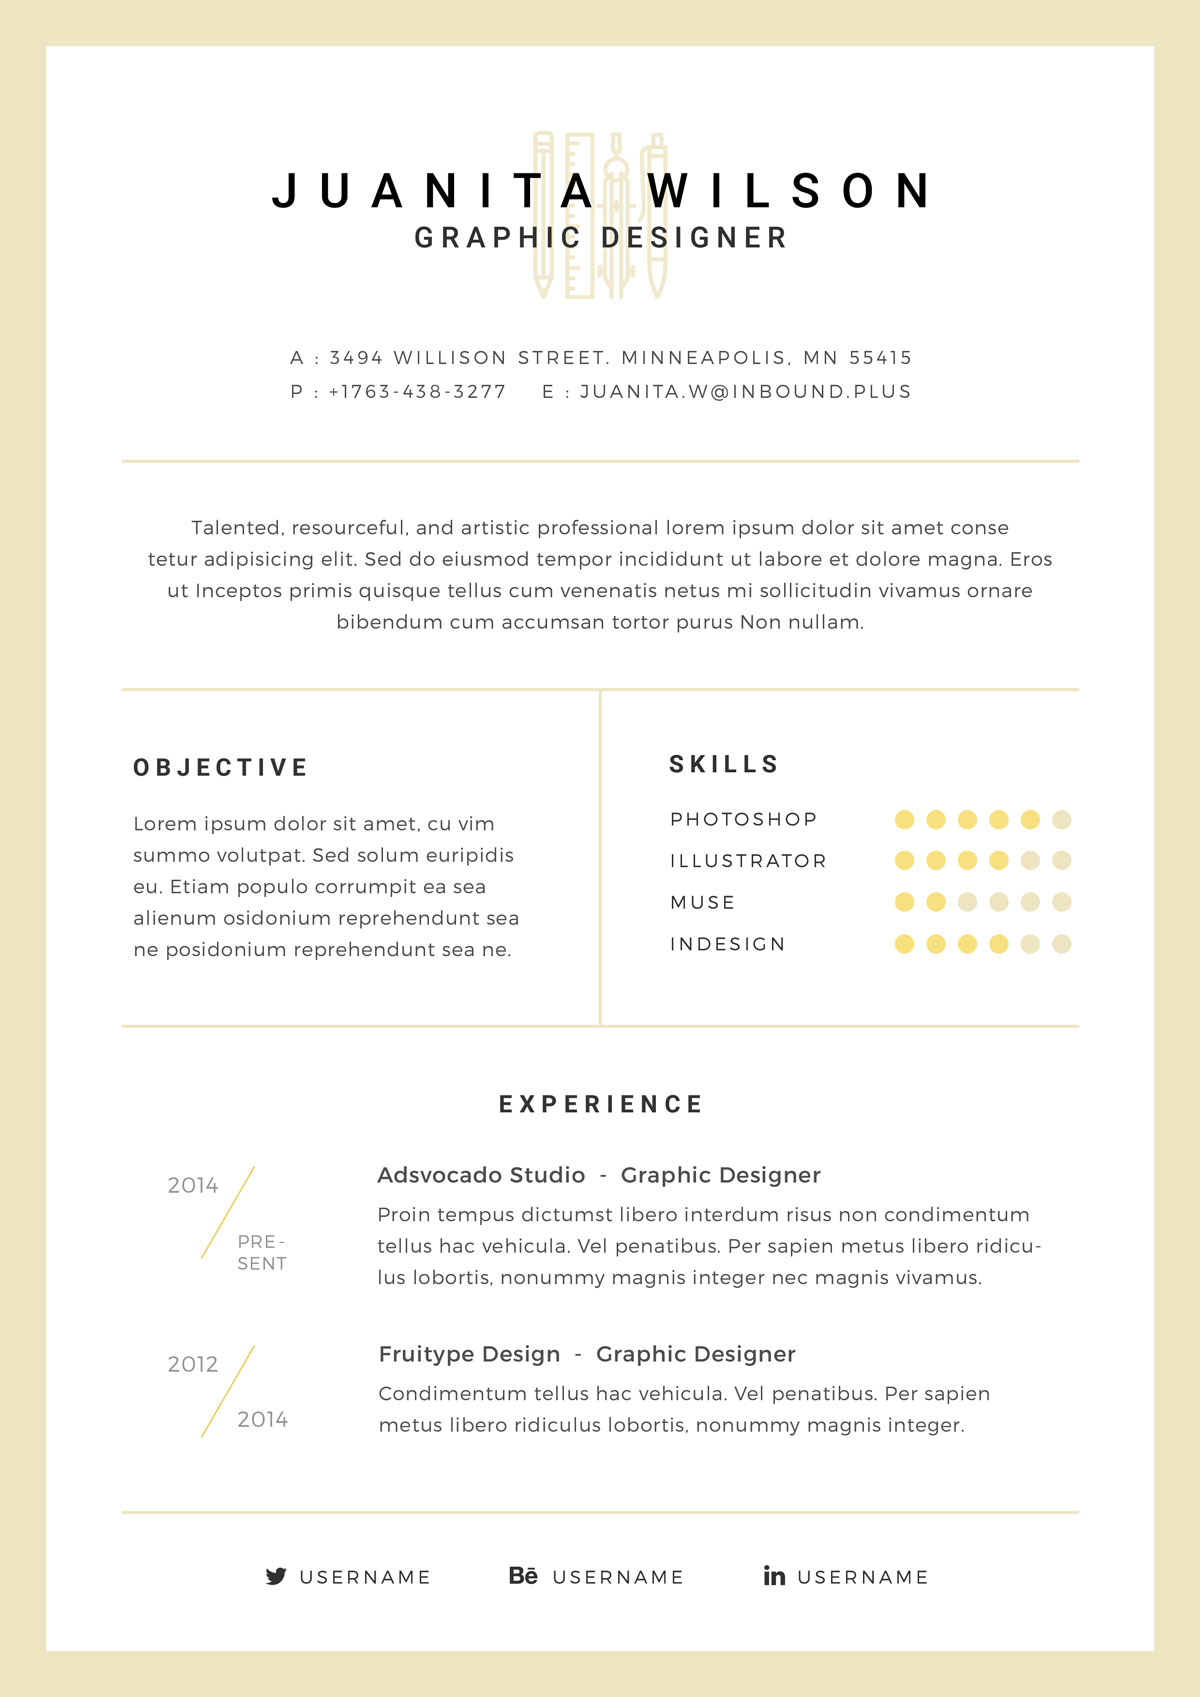 Free-Clean-Resume-Template-PSD-for-Graphic-Designer-4 (3)